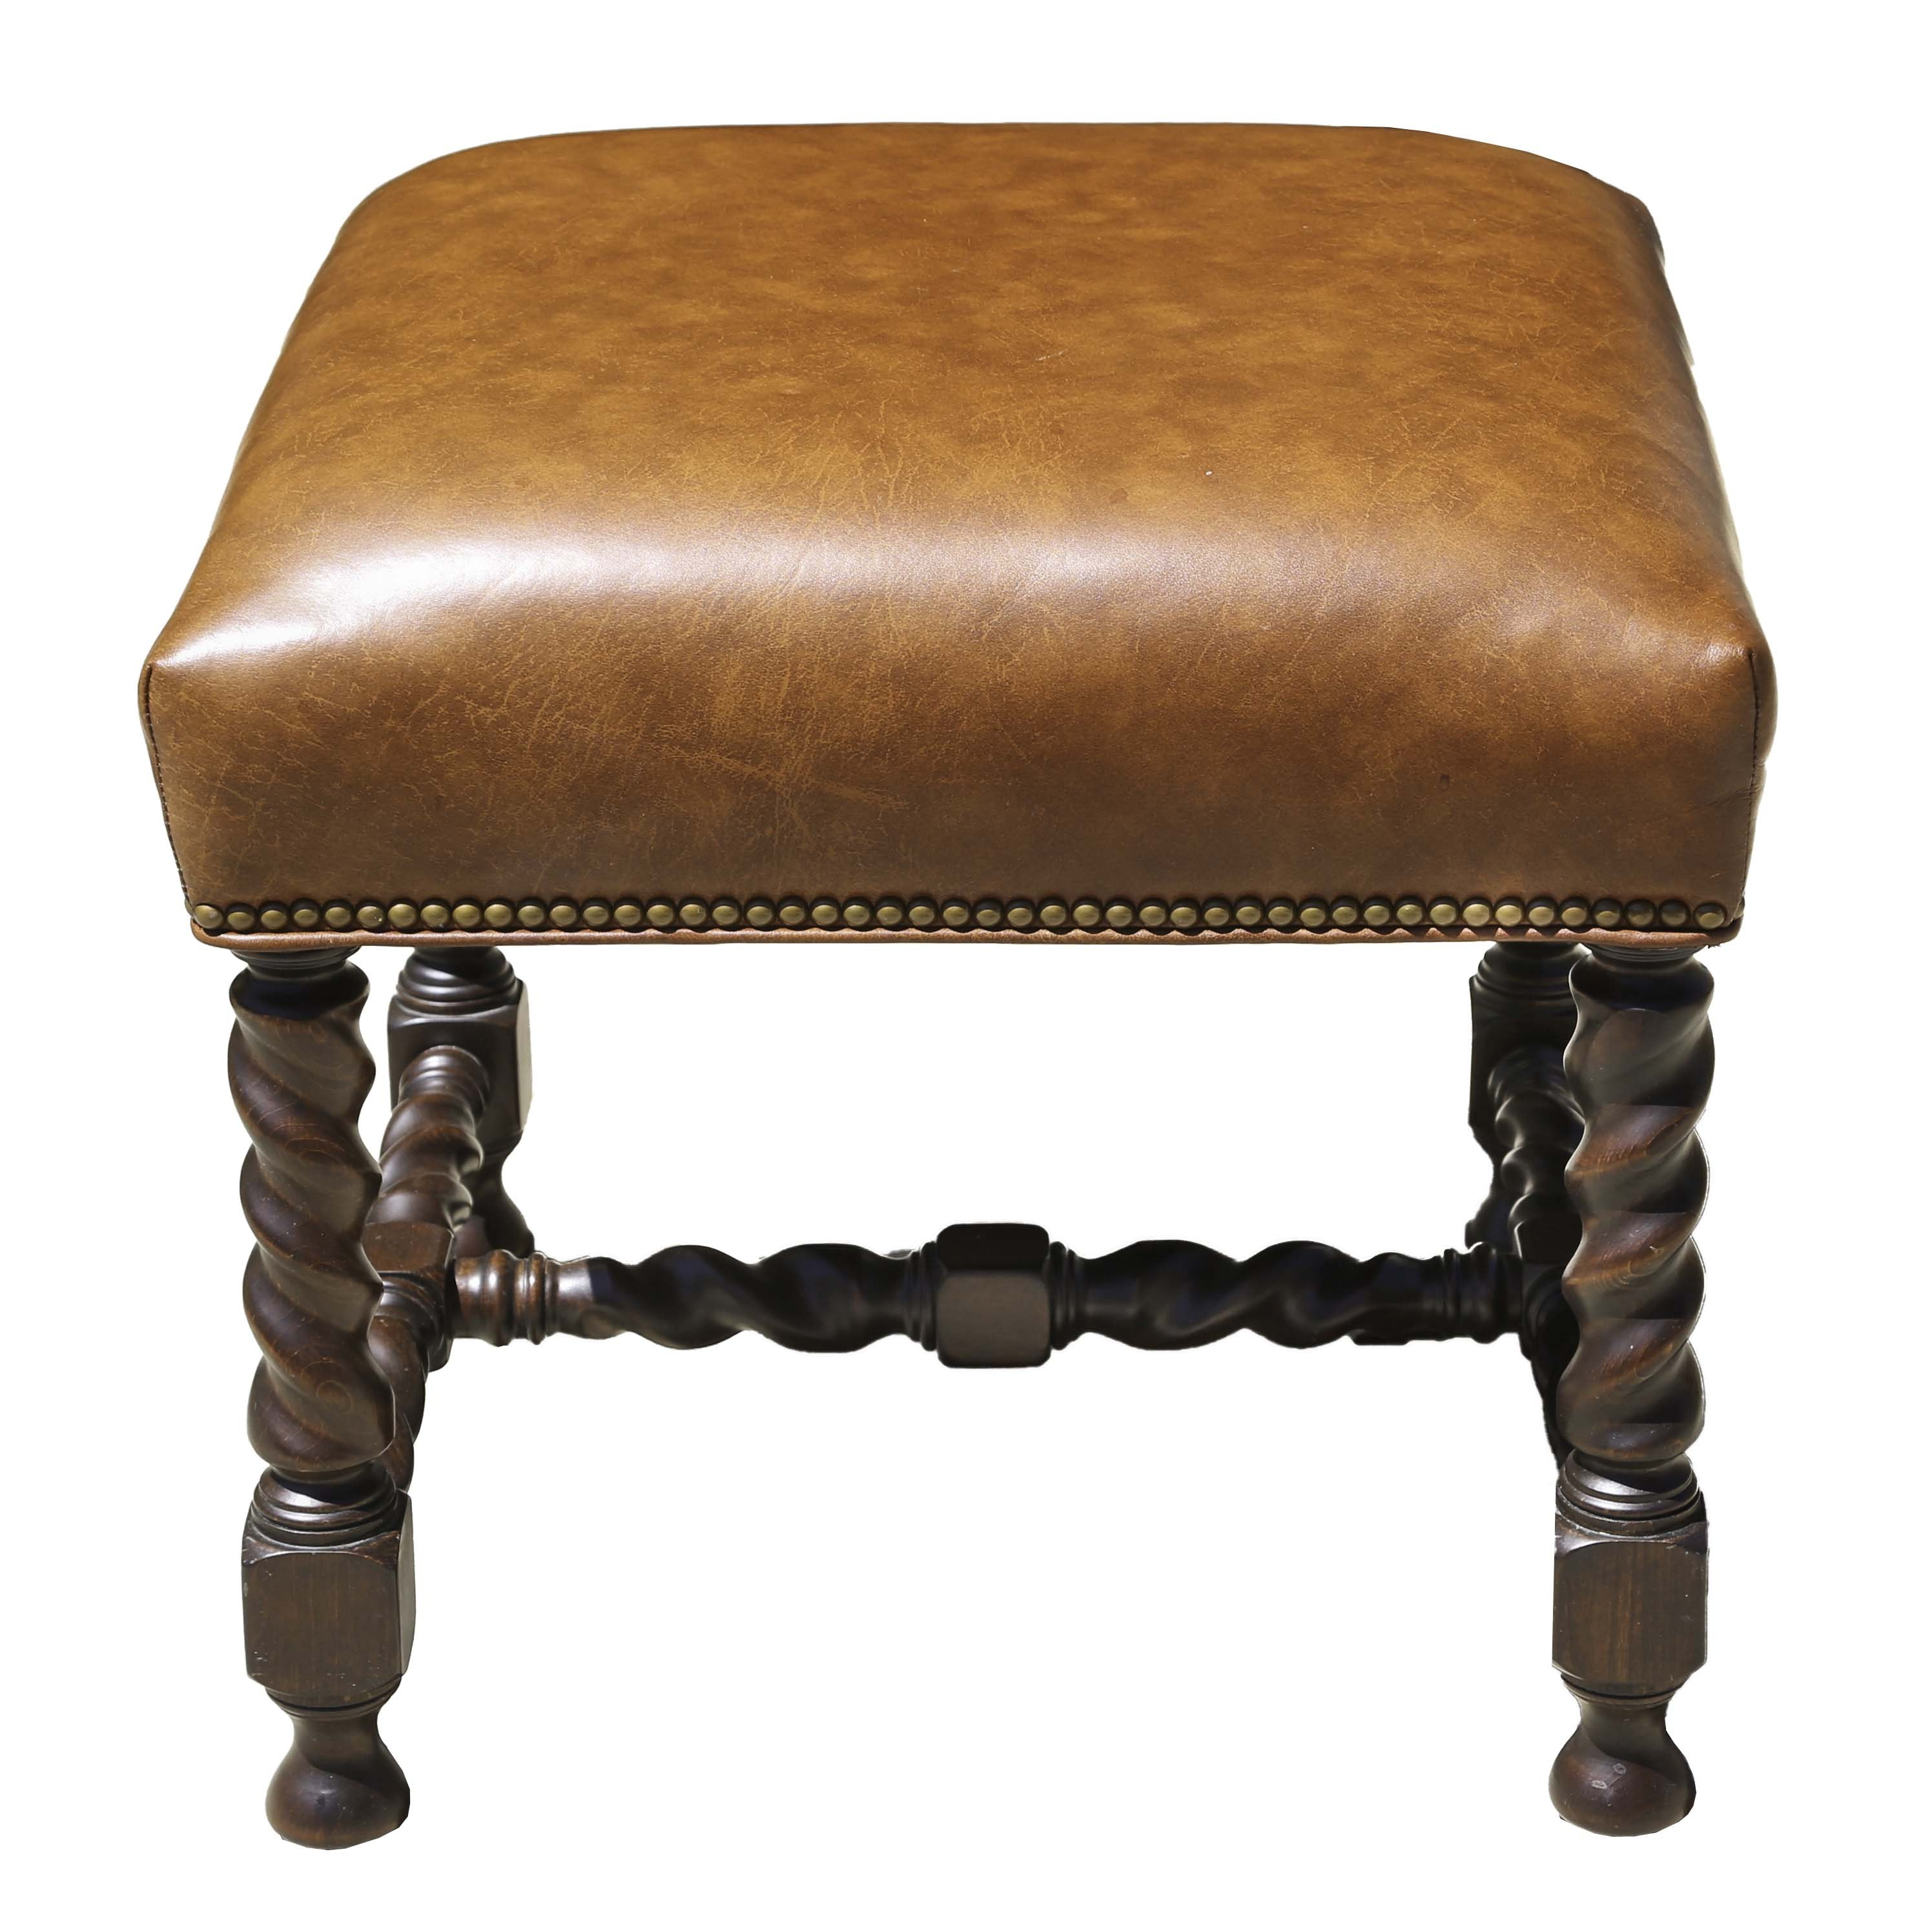 Leather Upholstered Ottoman with Brass Nail Head Detailing